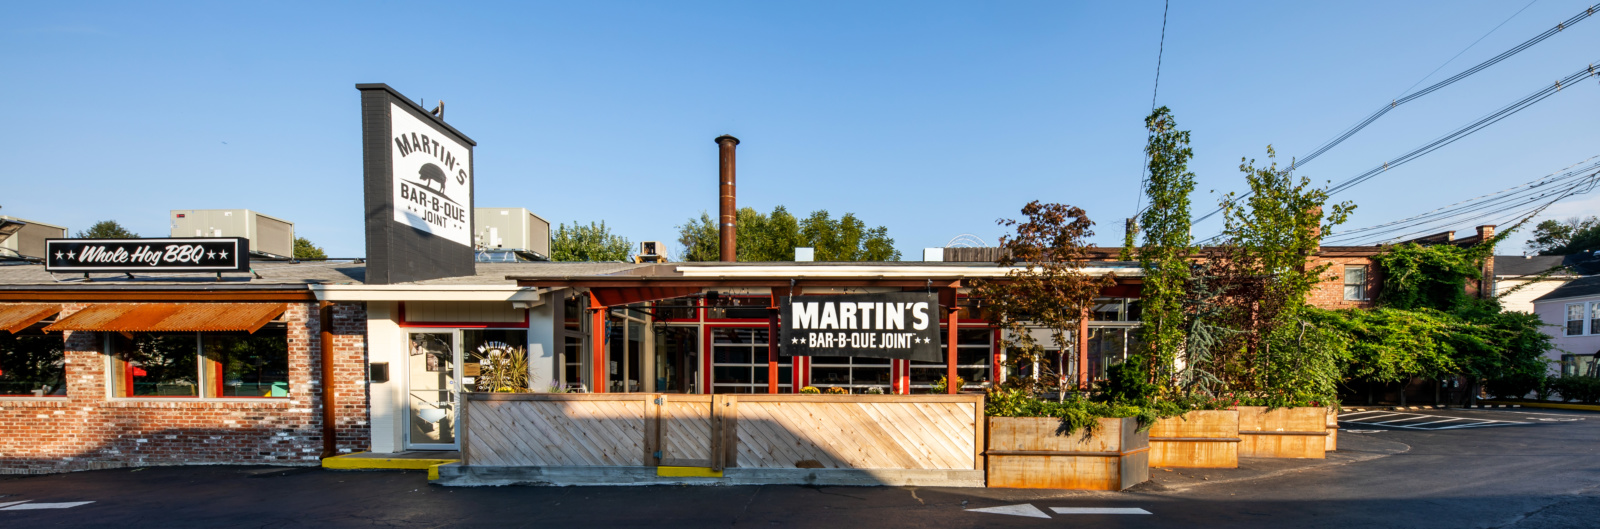 The front of Martin's BBQ in Louisville, KY